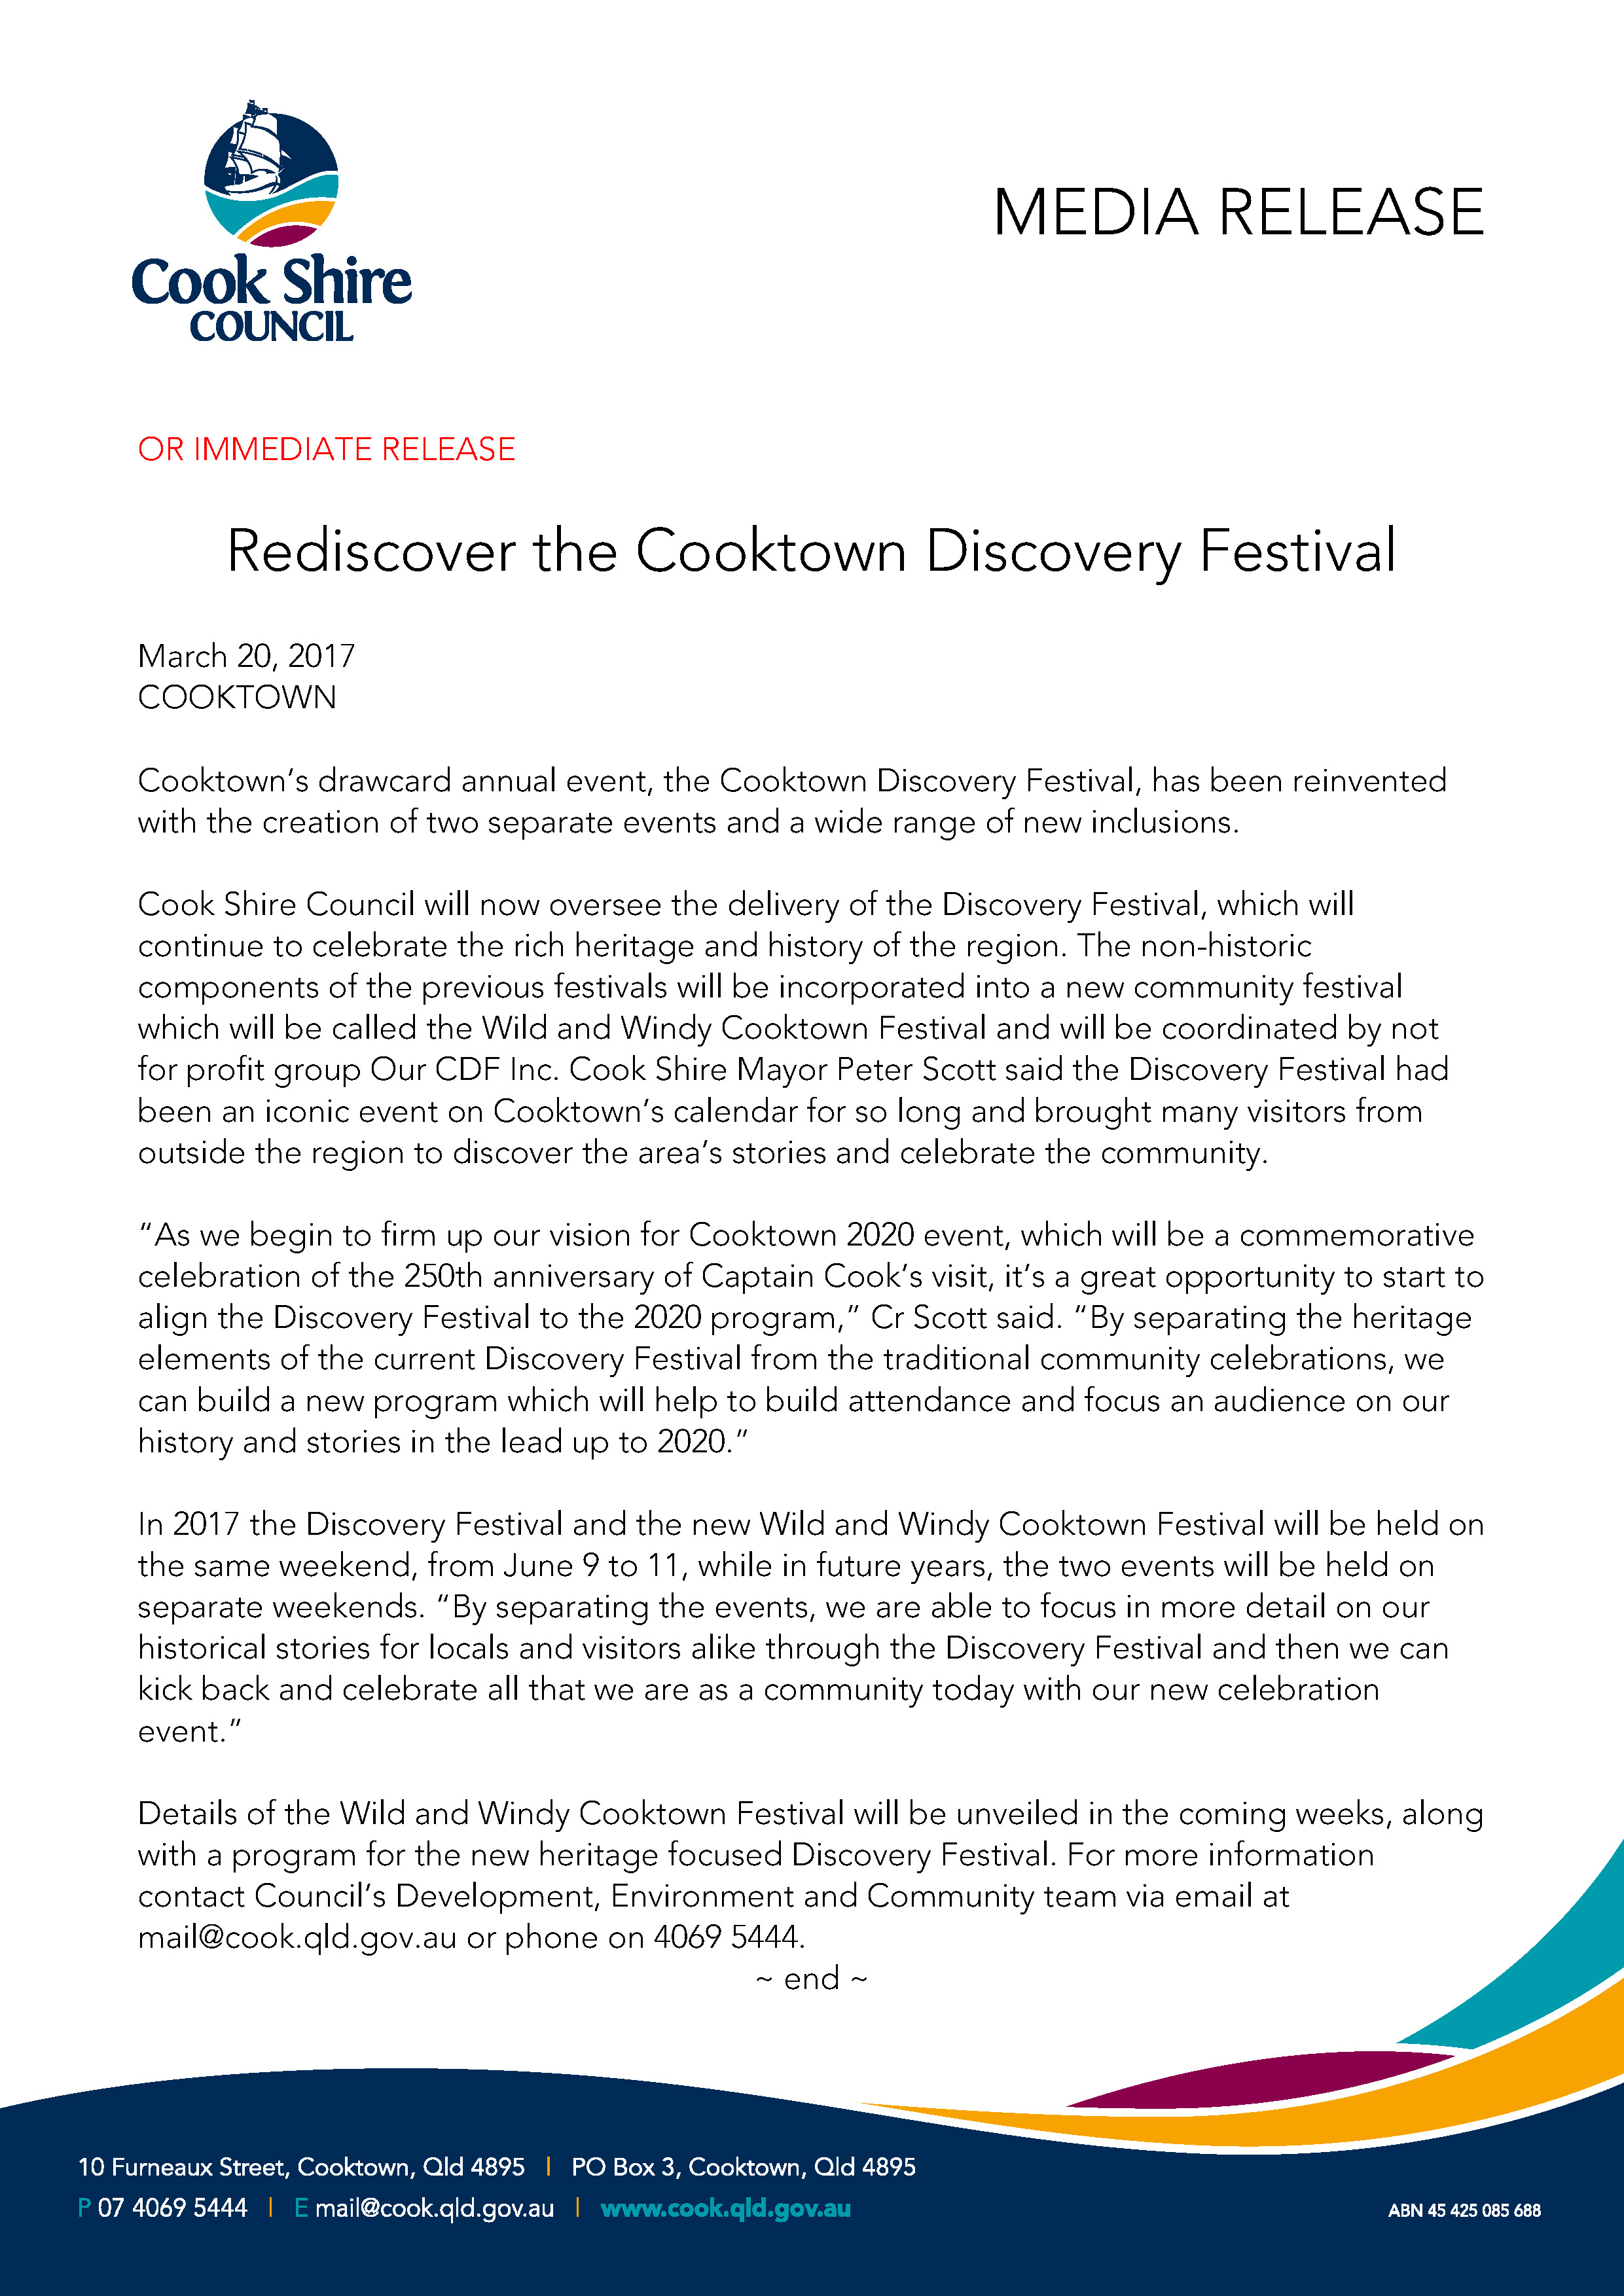 Rediscover the Cooktown Discovery Festival